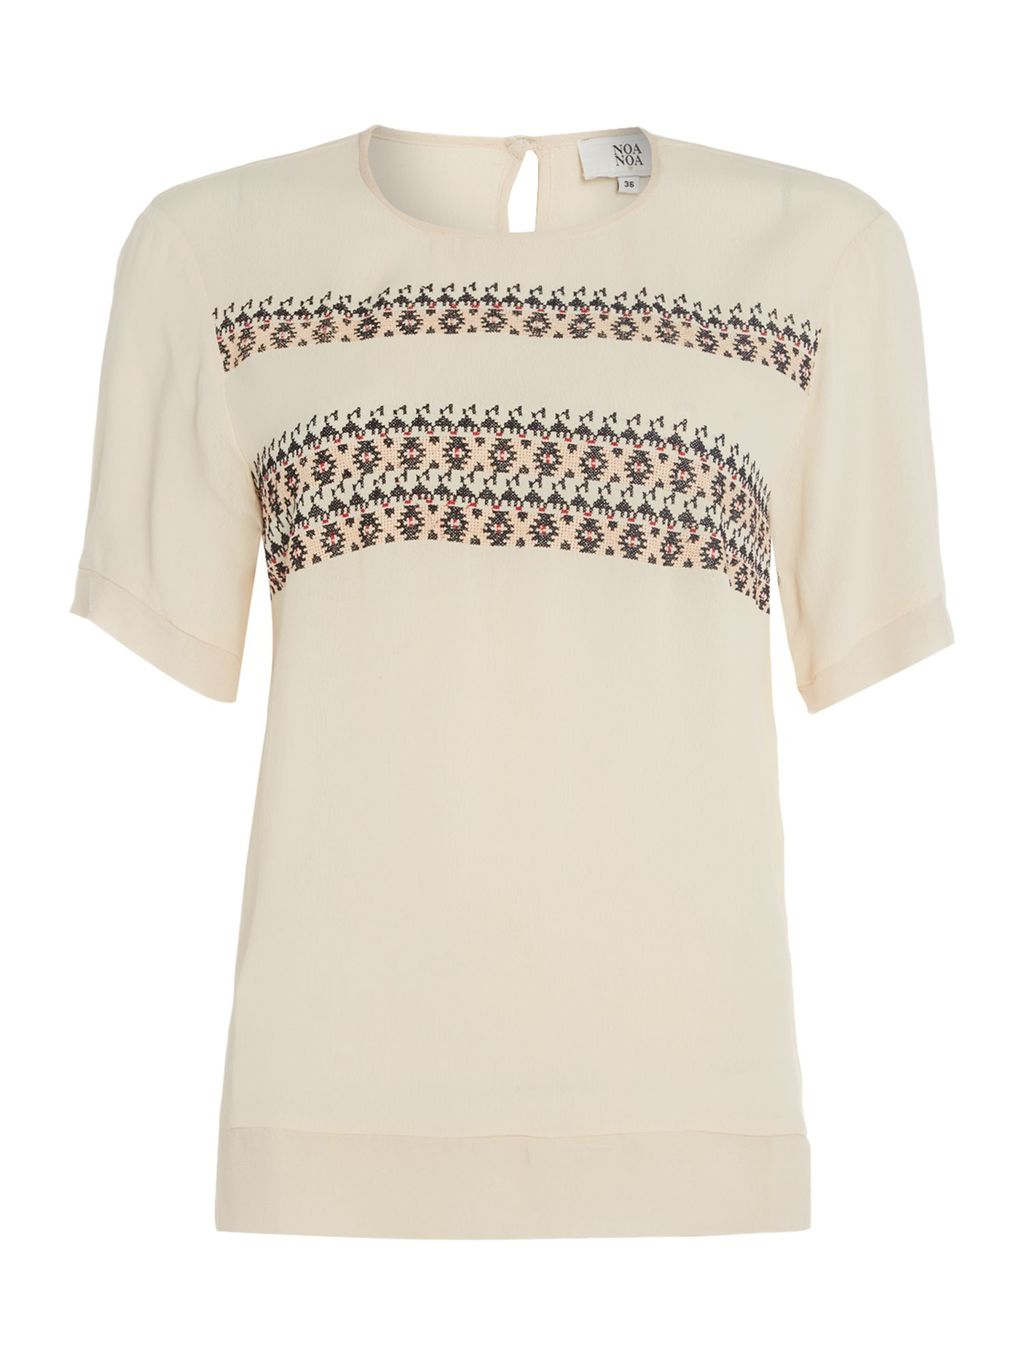 Short Sleeve Blouse, Pink - neckline: round neck; pattern: plain; style: blouse; predominant colour: blush; occasions: casual, creative work; length: standard; fibres: viscose/rayon - 100%; fit: body skimming; sleeve length: short sleeve; sleeve style: standard; texture group: sheer fabrics/chiffon/organza etc.; pattern type: fabric; season: s/s 2016; wardrobe: basic